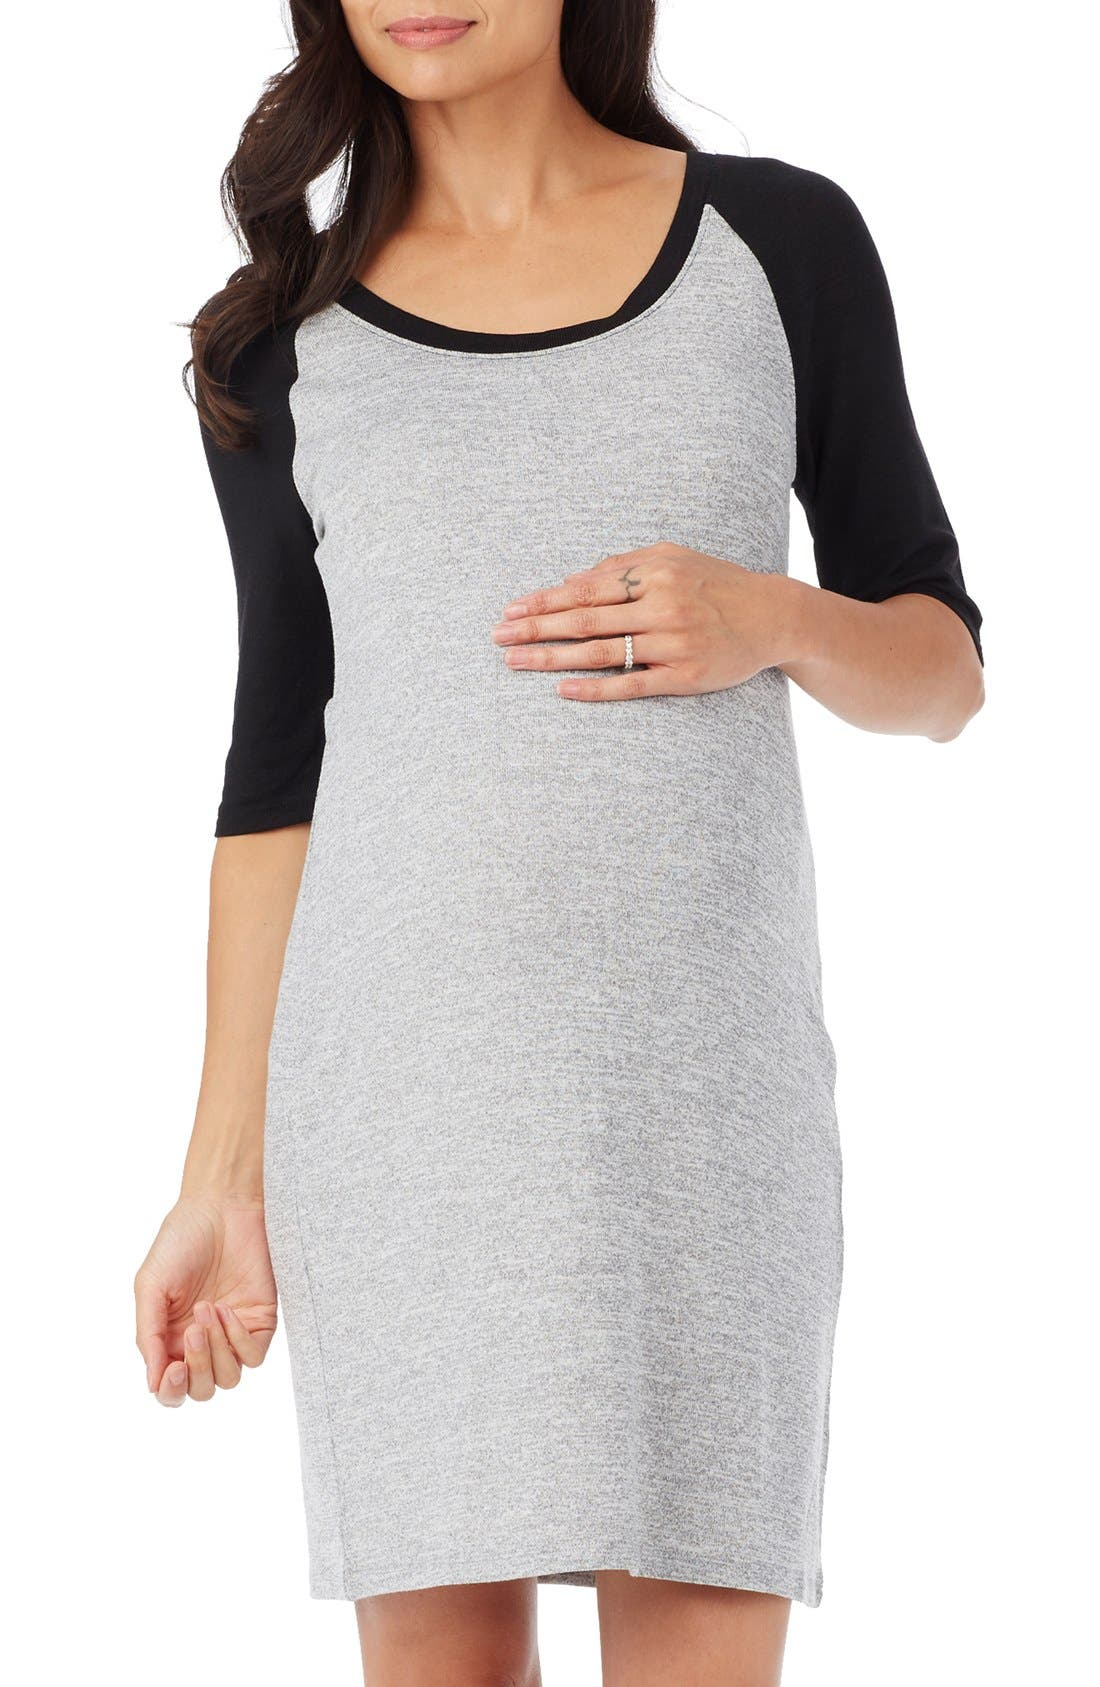 'Derek' Raglan Sleeve Maternity Dress,                         Main,                         color, HEATHER GREY/ BLACK COMBO